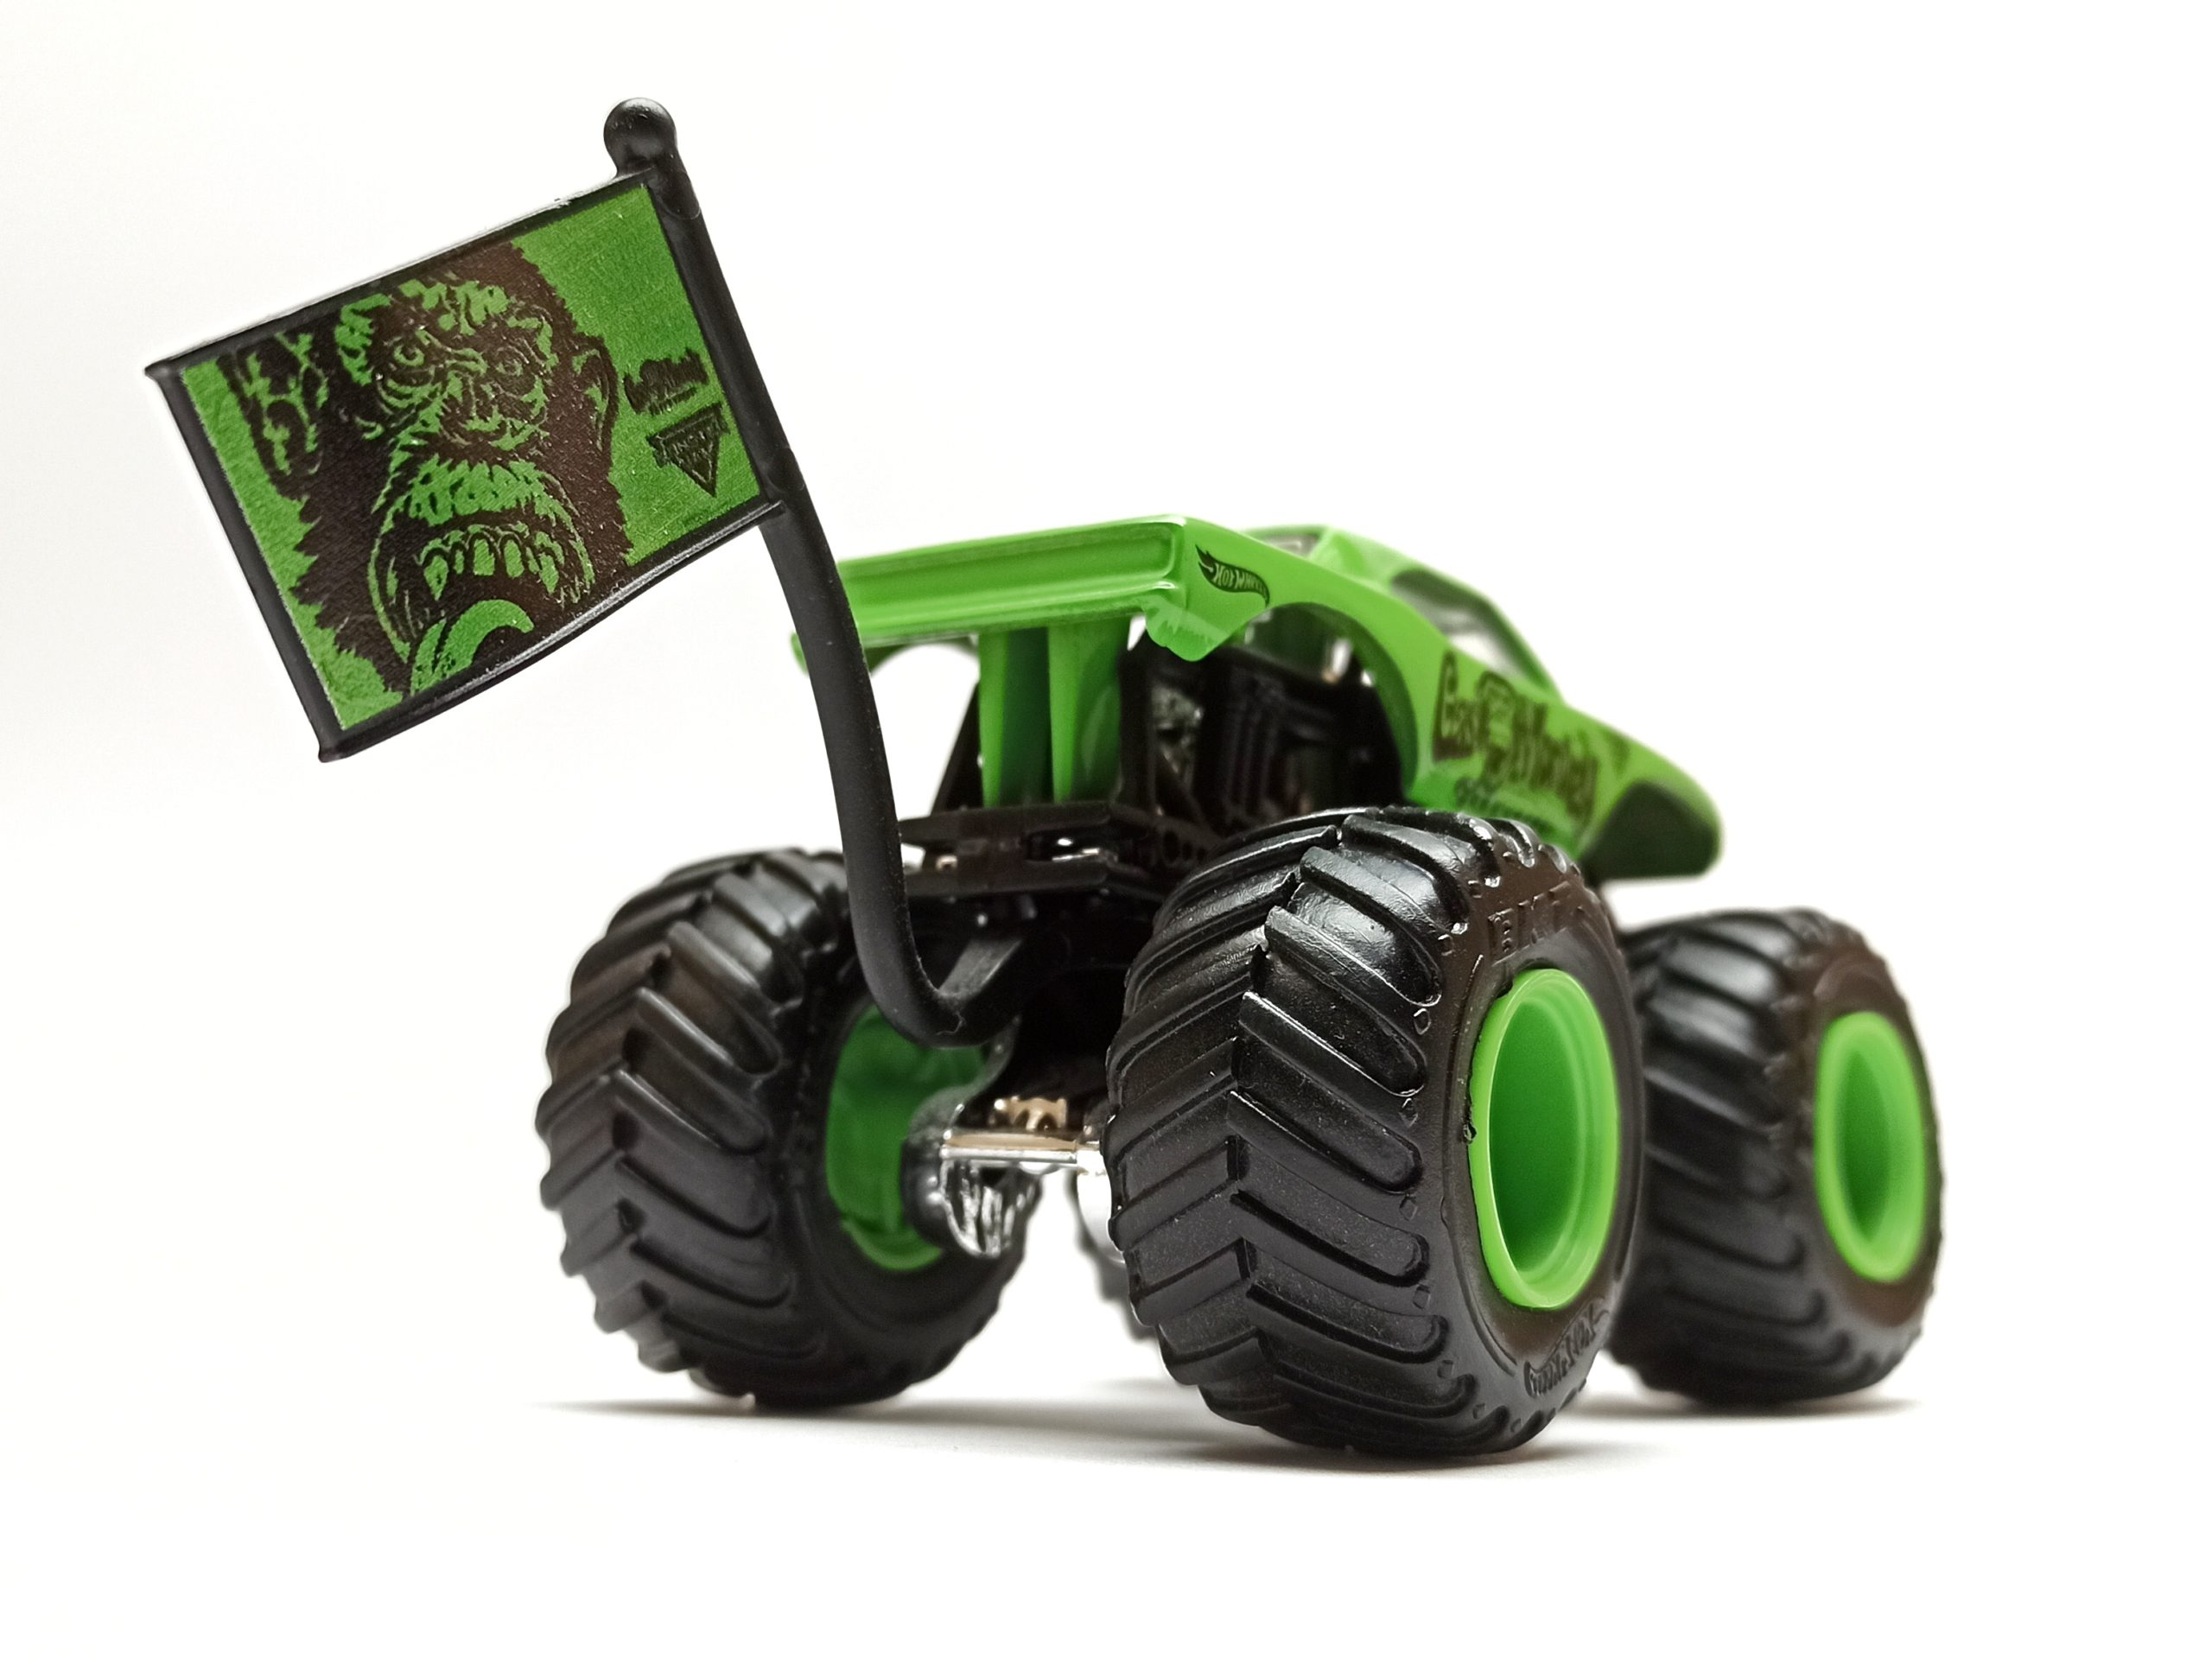 Hot Wheels Monster Jam Gas Monkey Garage 2017 Epic Editions (1/10) green back angle